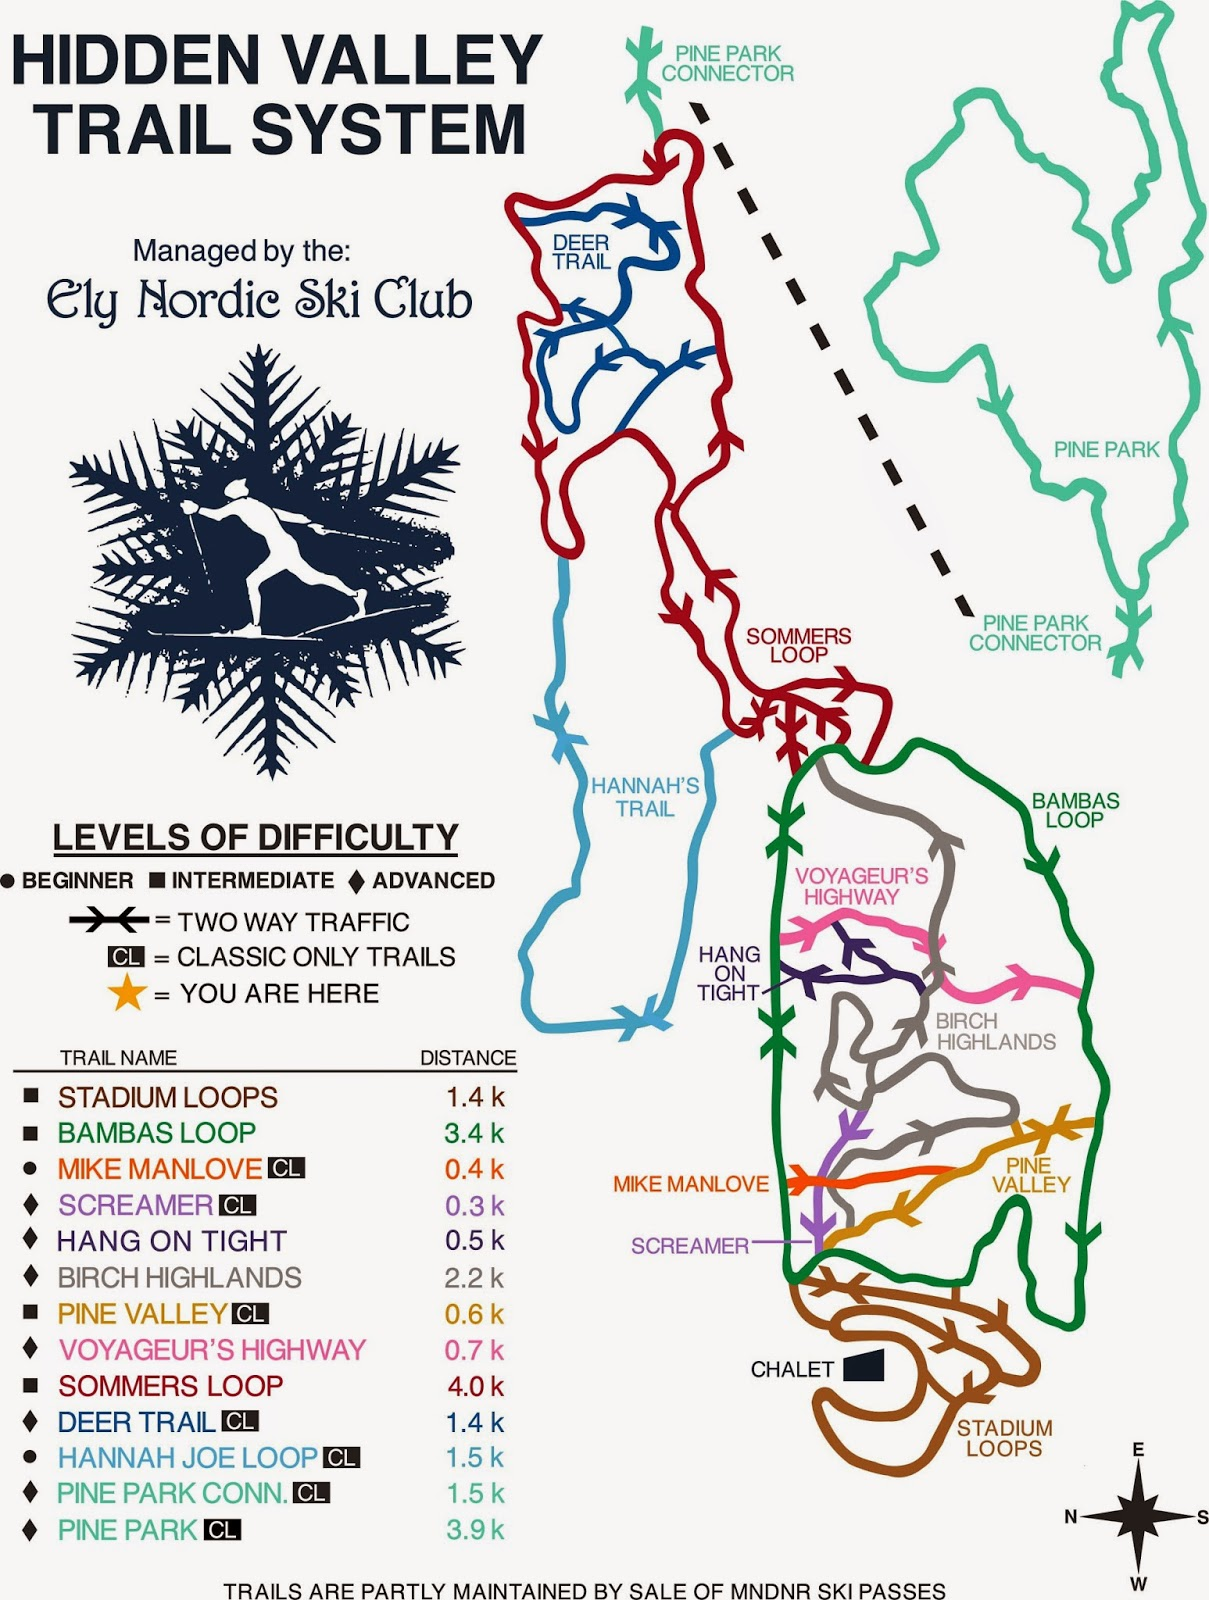 Day Hiking Trails Maps for major day hiking trails in Ely Minn